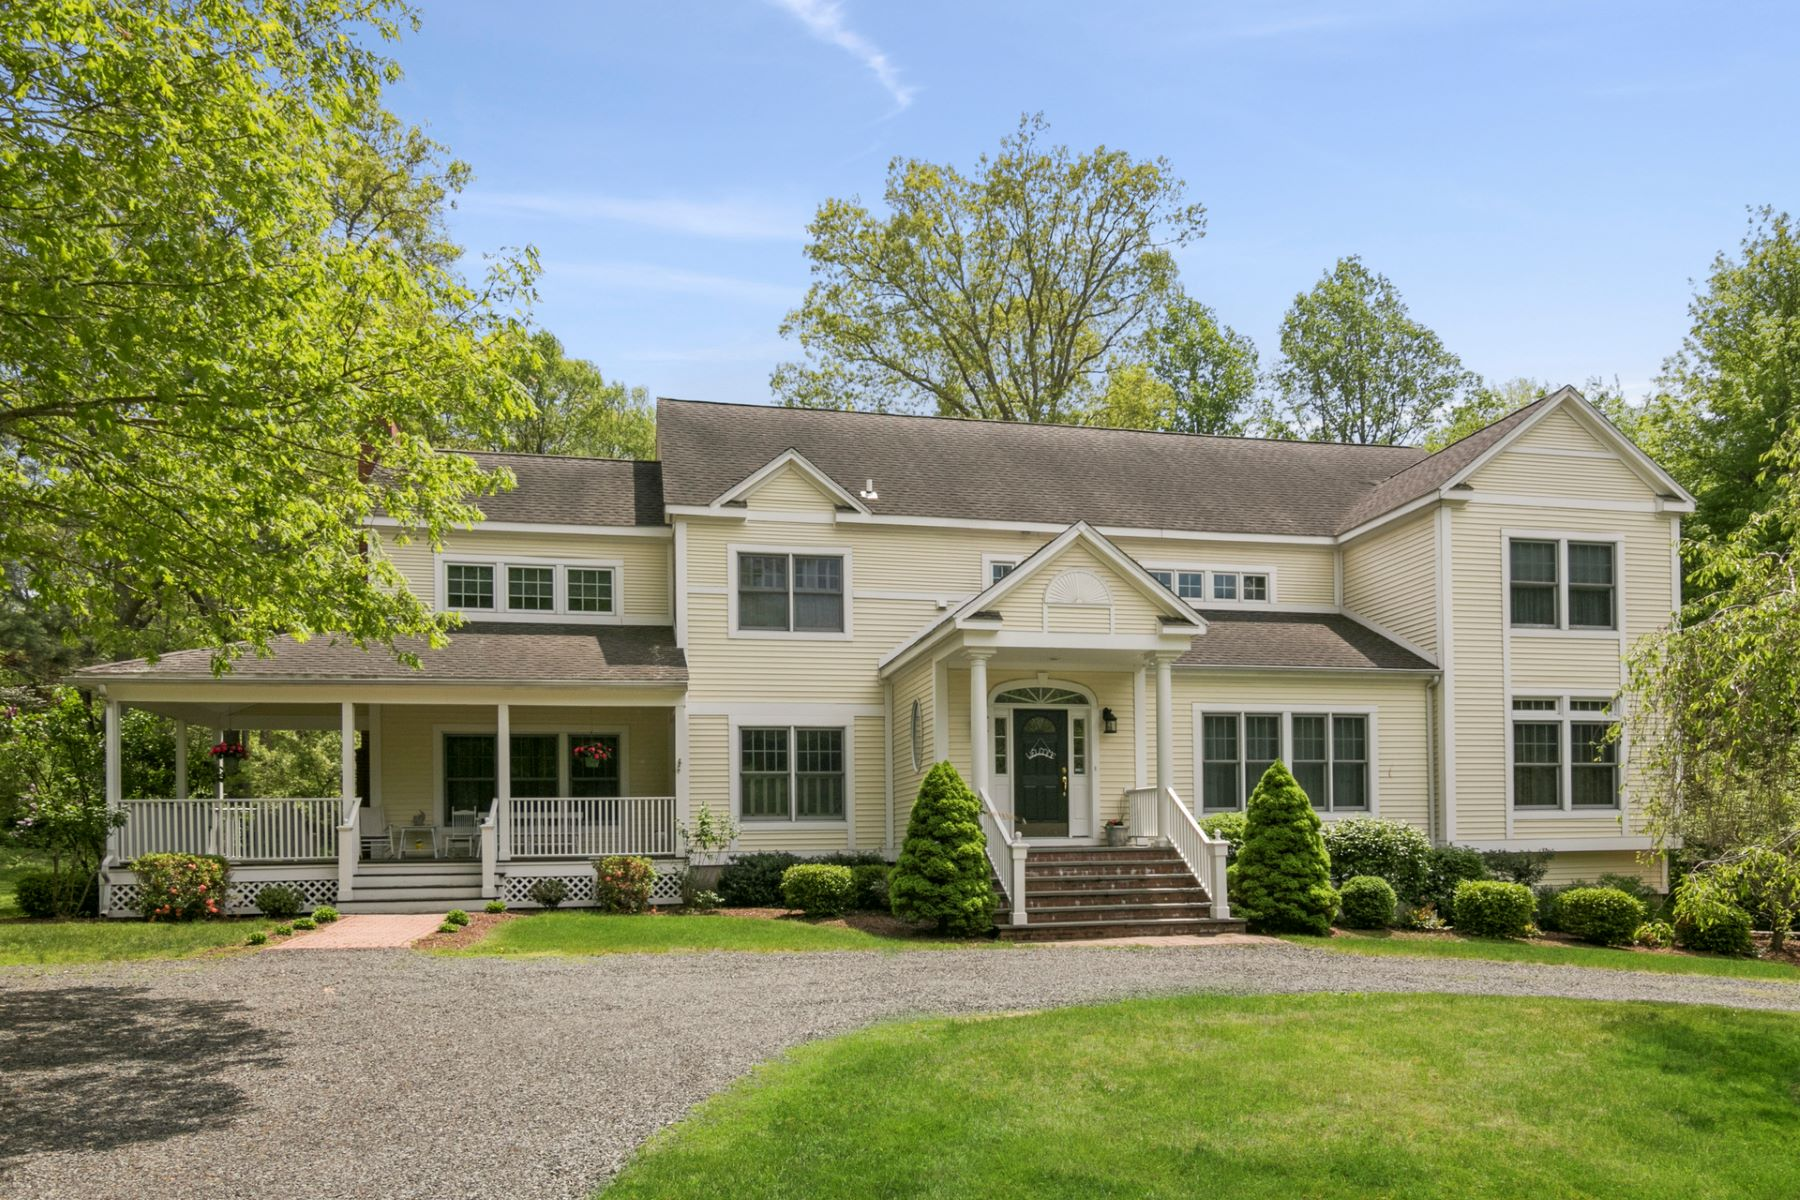 Single Family Homes for Sale at 8 East Bearhouse Hill Road Guilford, Connecticut 06437 United States